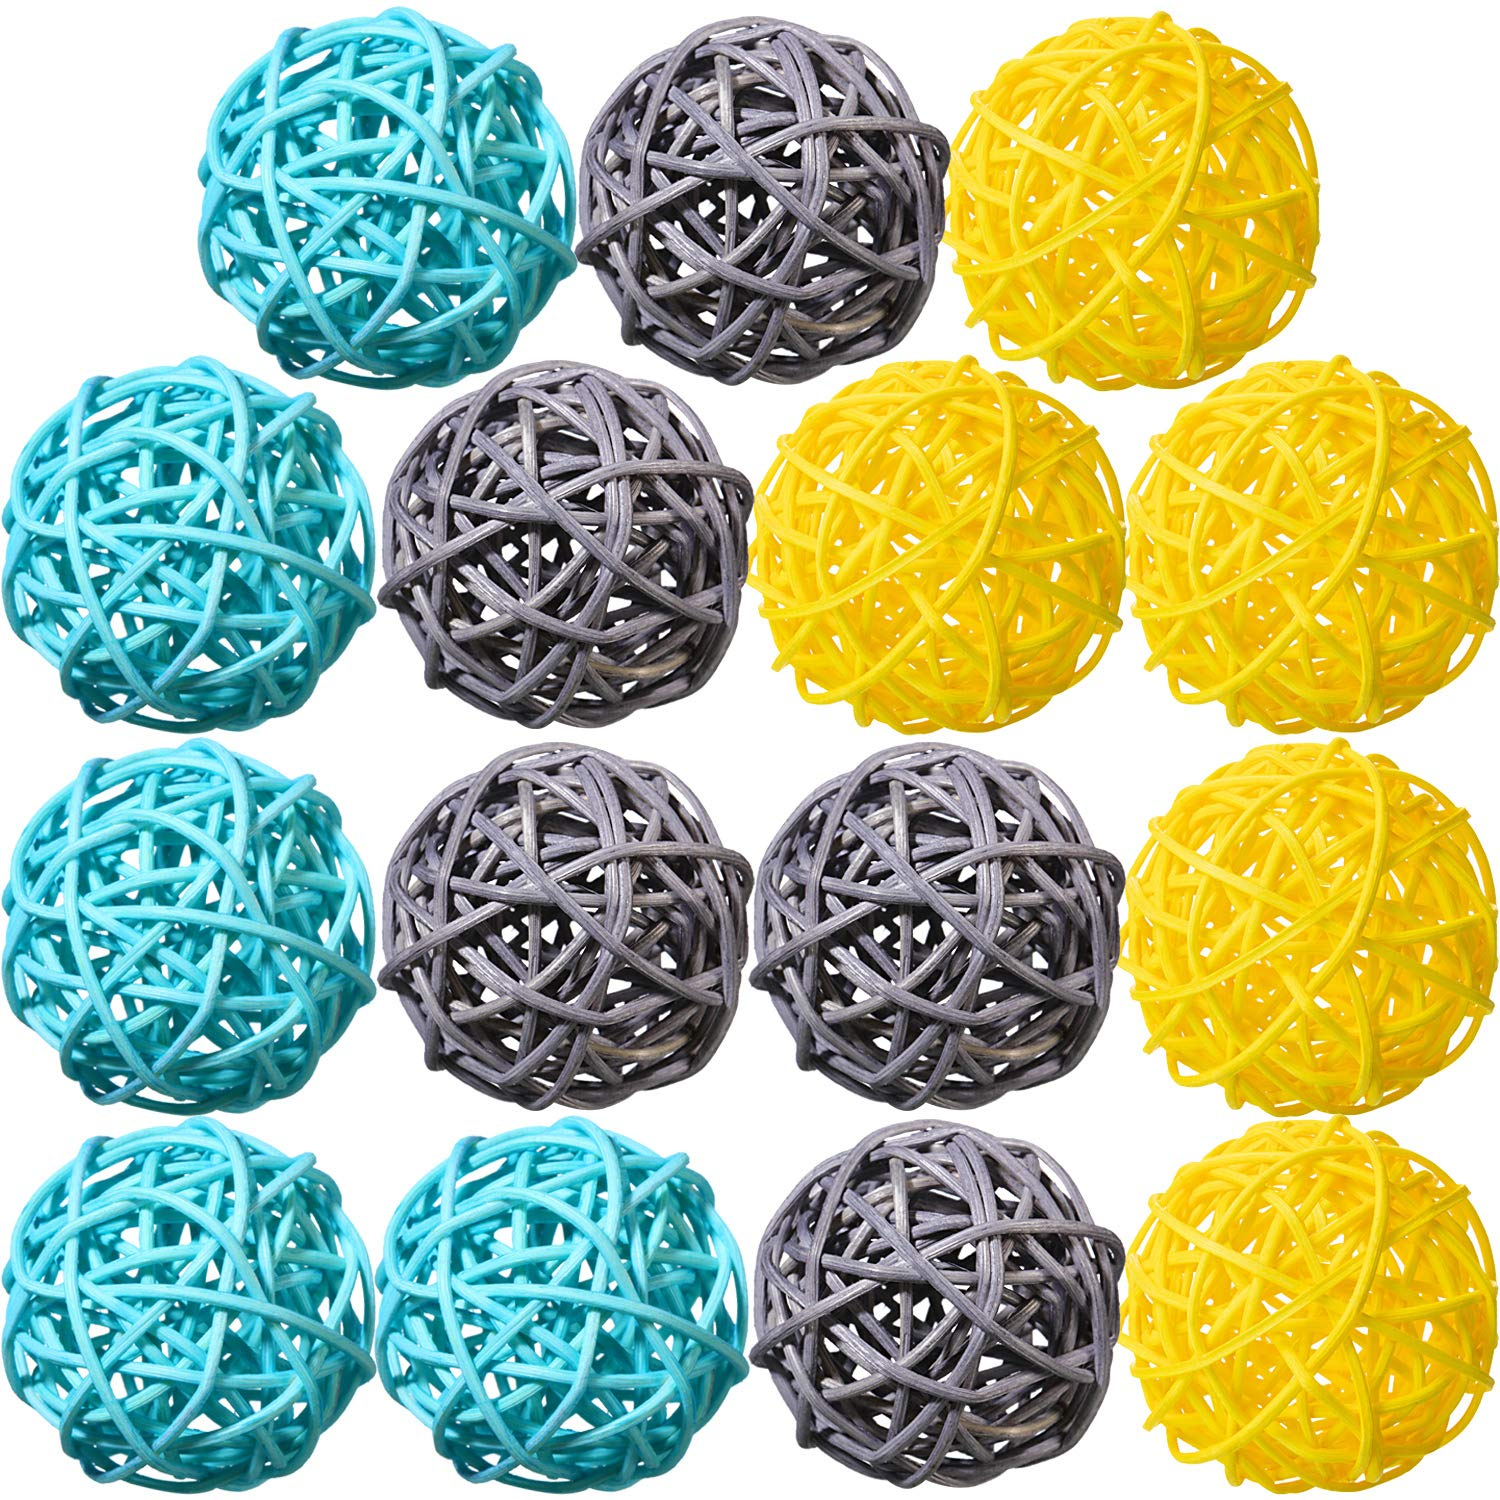 15 Pieces Wicker Rattan Balls Natural Sphere Orbs Decorative Orbs Vase Filler for Table Wedding Party Christmas Baby Shower Valentine's Day Decoration